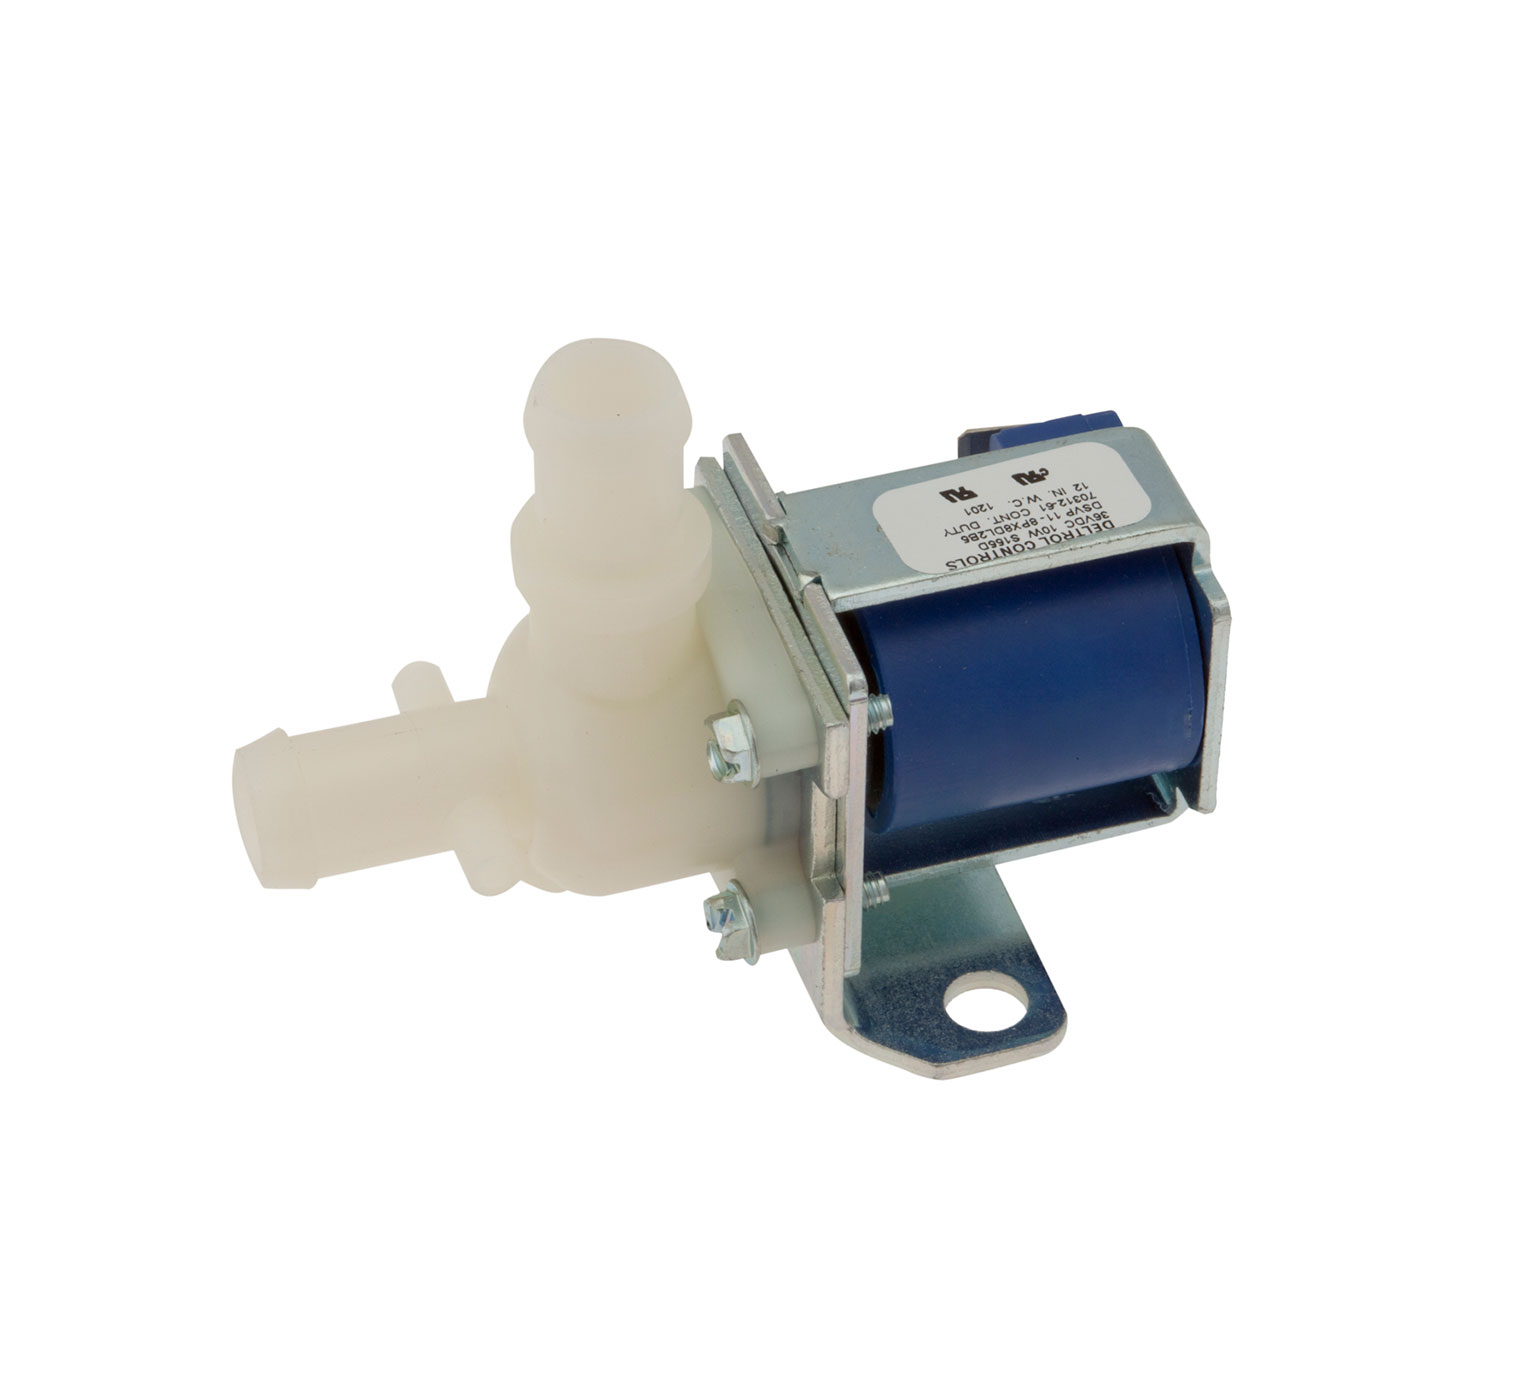 Solution Valve - 36 Volt Fixed Replaces Advance 56303275